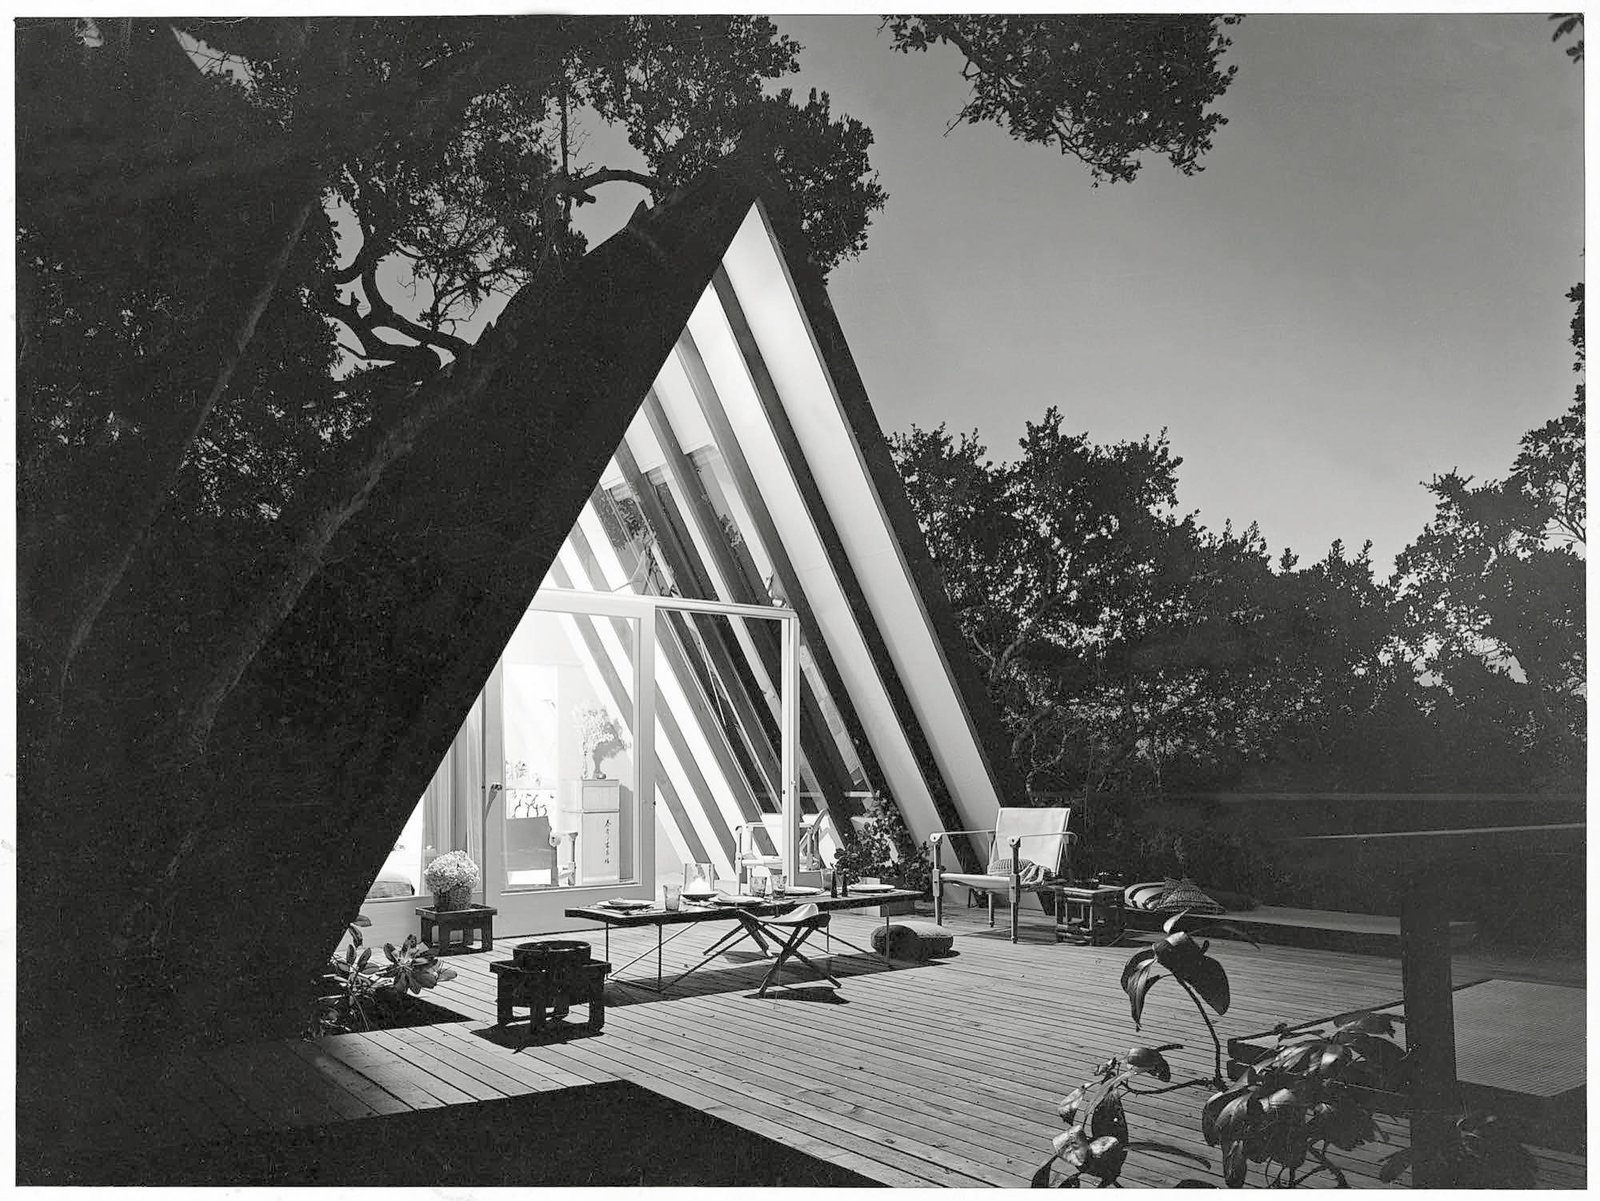 John Campbell's Leisure House, Mill Valley , California, 1953 / Photo Courtesy of Princeton Architectural Press  Spawned by postwar affluence, A-frame cabins became the quintessential American vacation home of the 1950s and 60s. A look at what made these icons of middle-class leisure immensely popular then, and what it is like to remodel and live in one today.  Photos from Cabin Love